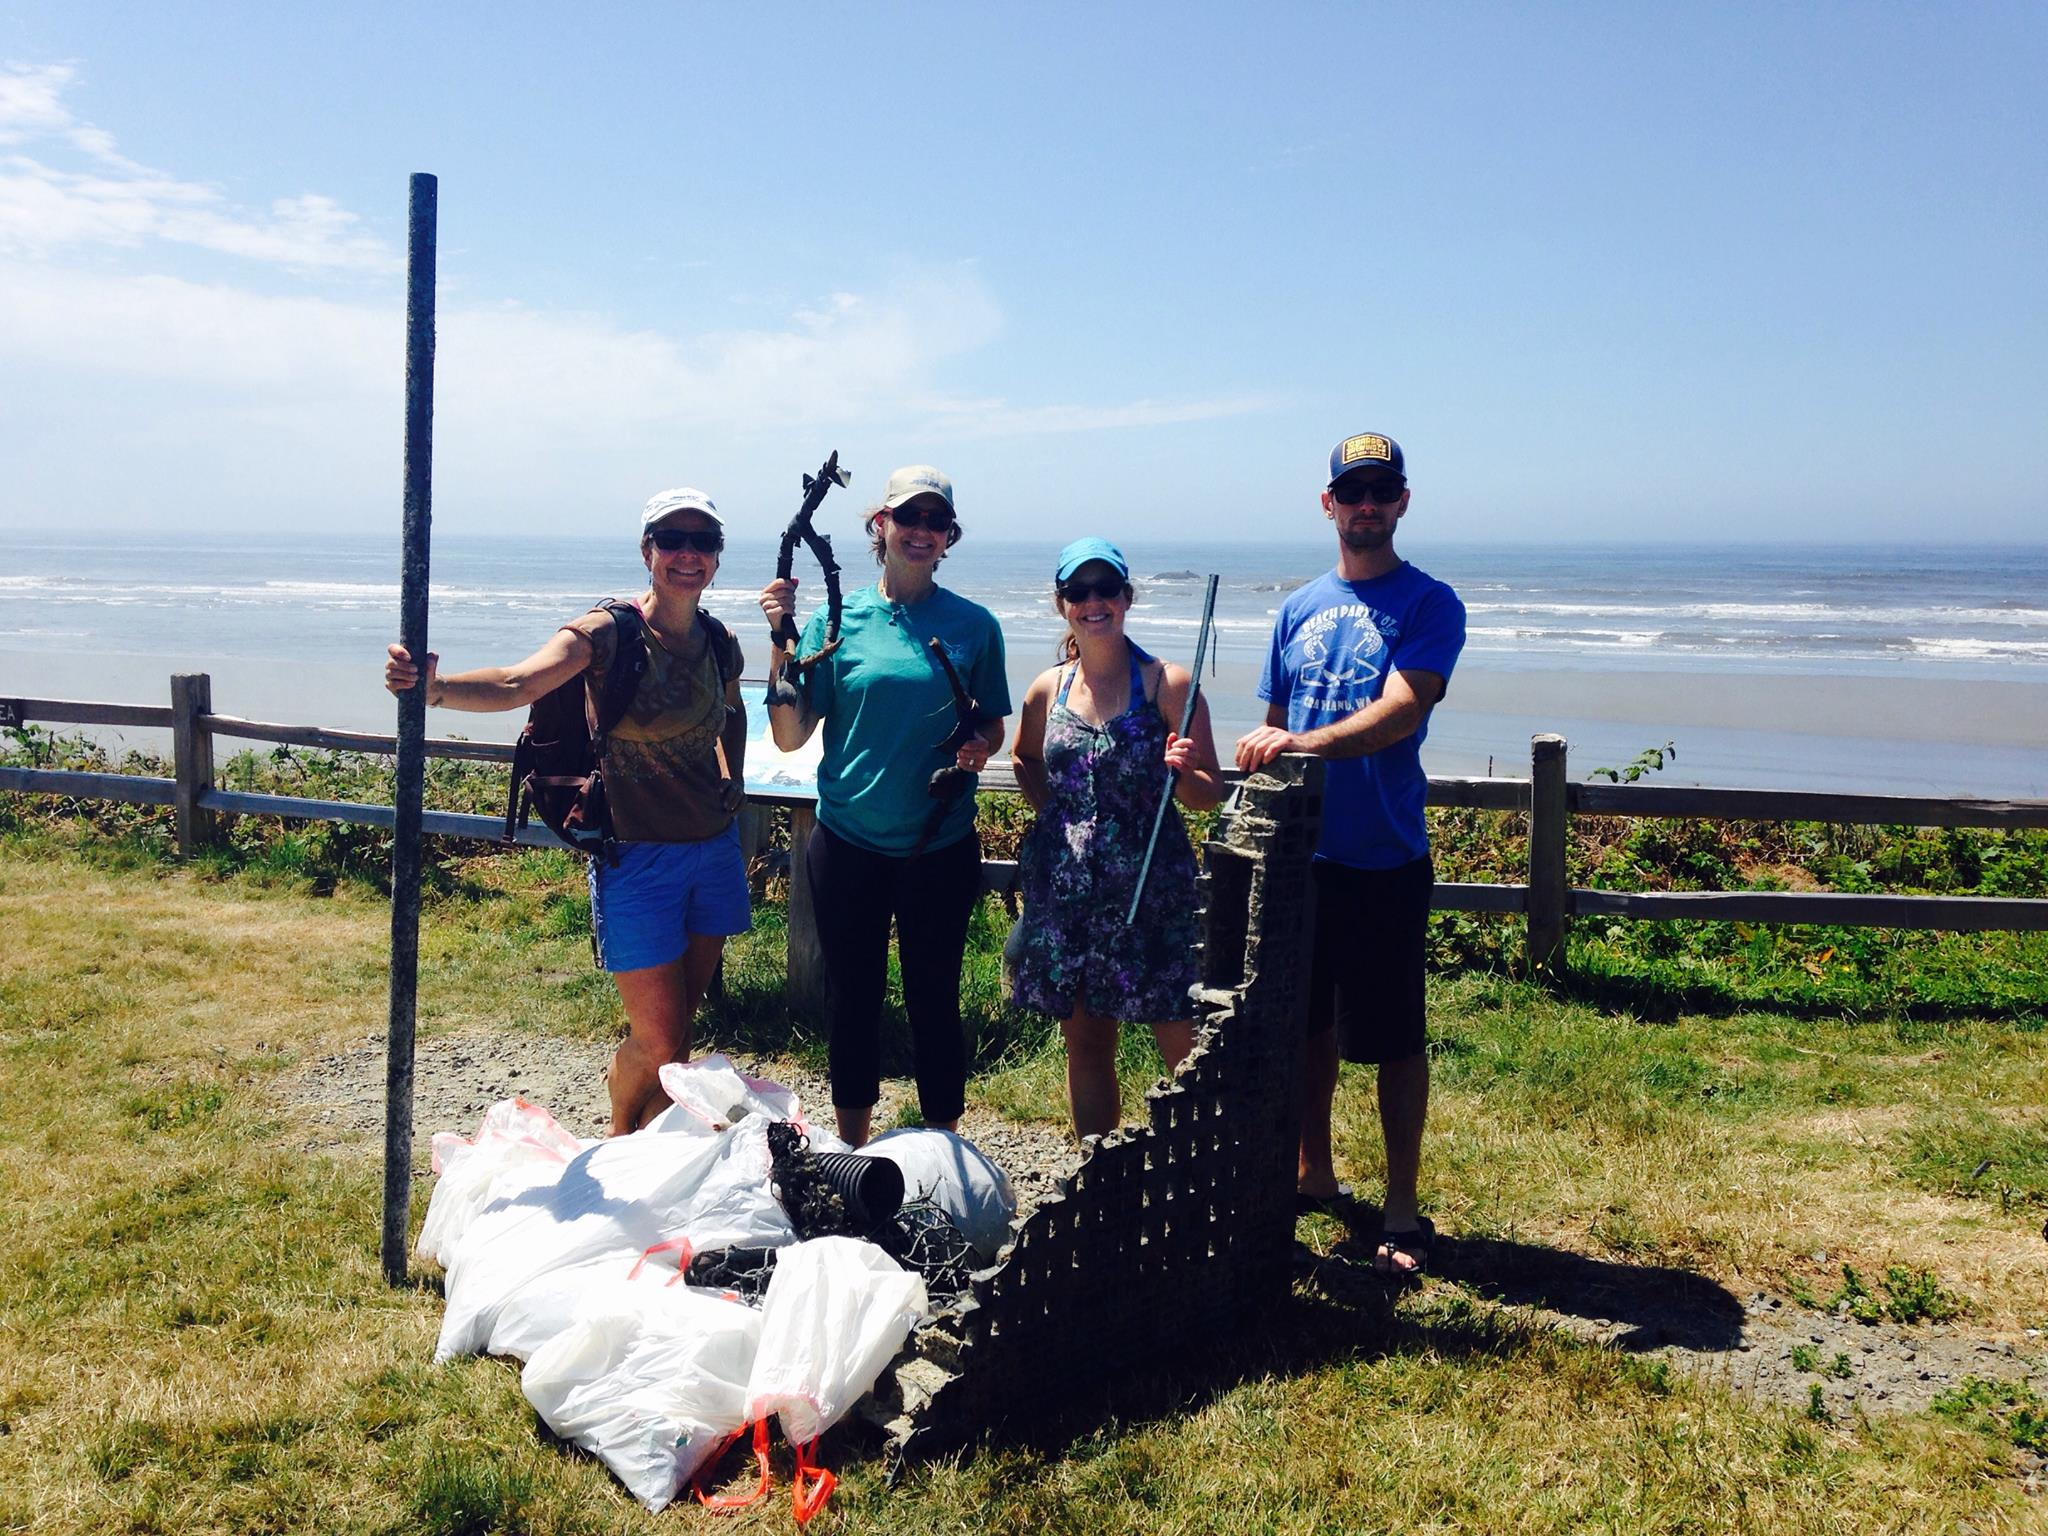 Washington Coastal Cleanup this Saturday 4/21